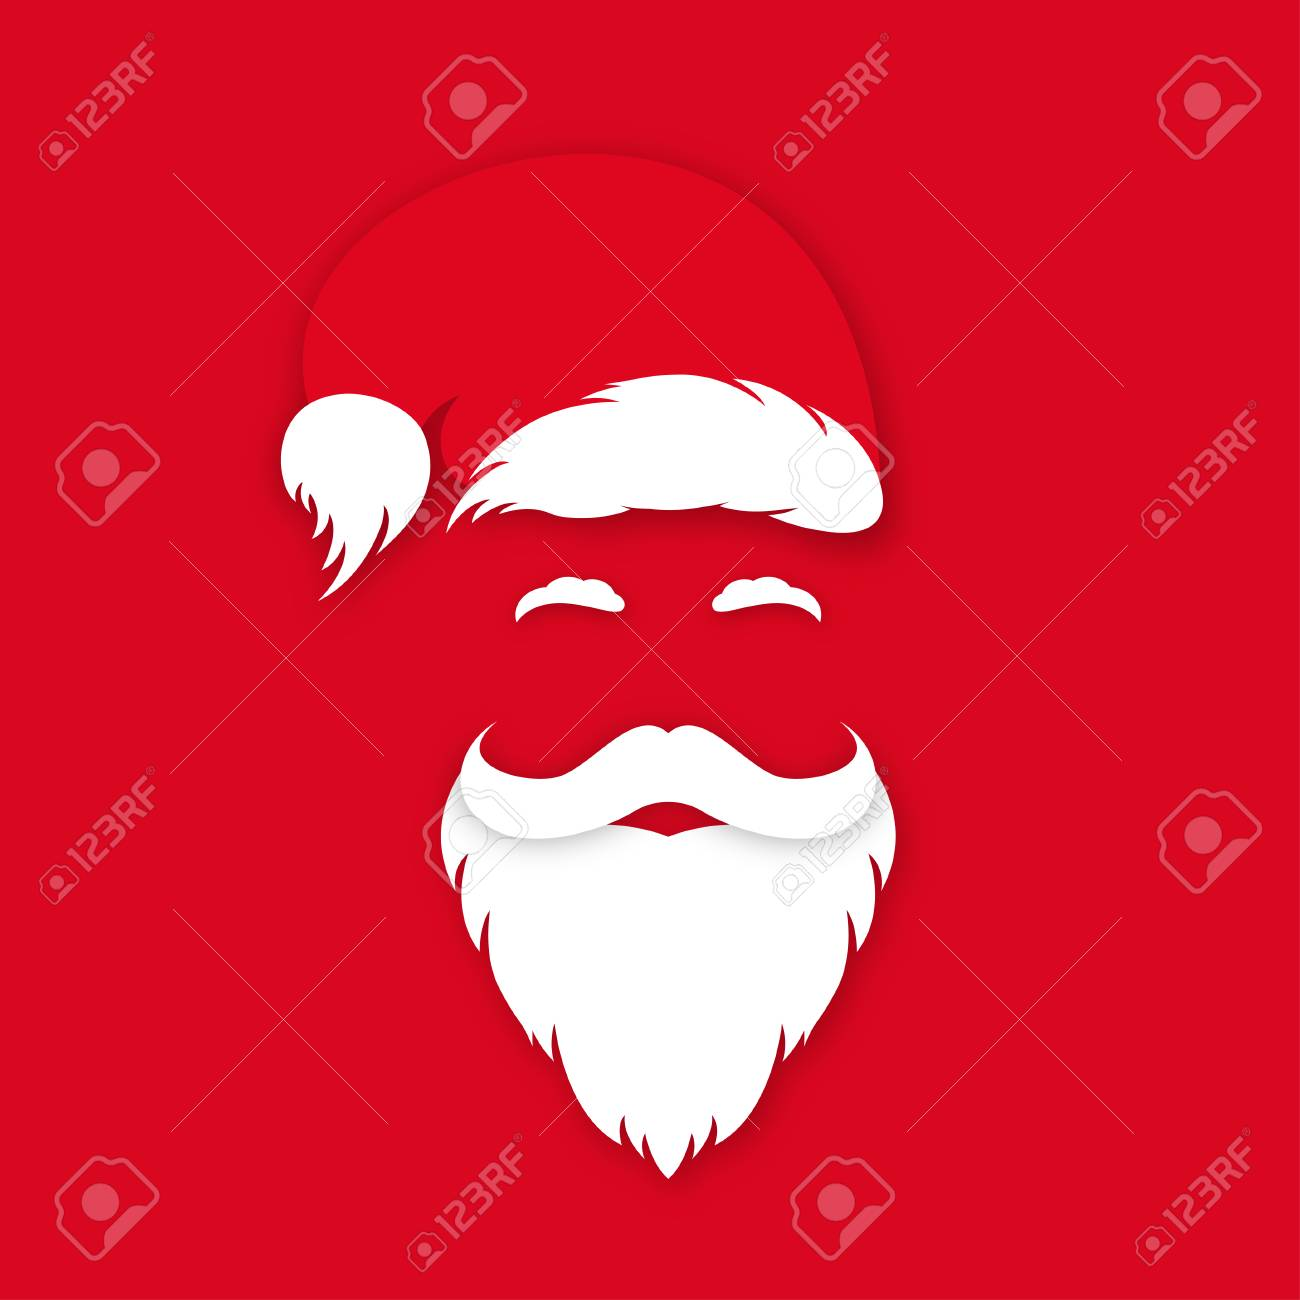 d23791fa50a83a Vector. Santa Claus in hat on red background. Santa Claus's face silhouette  with lush beard,